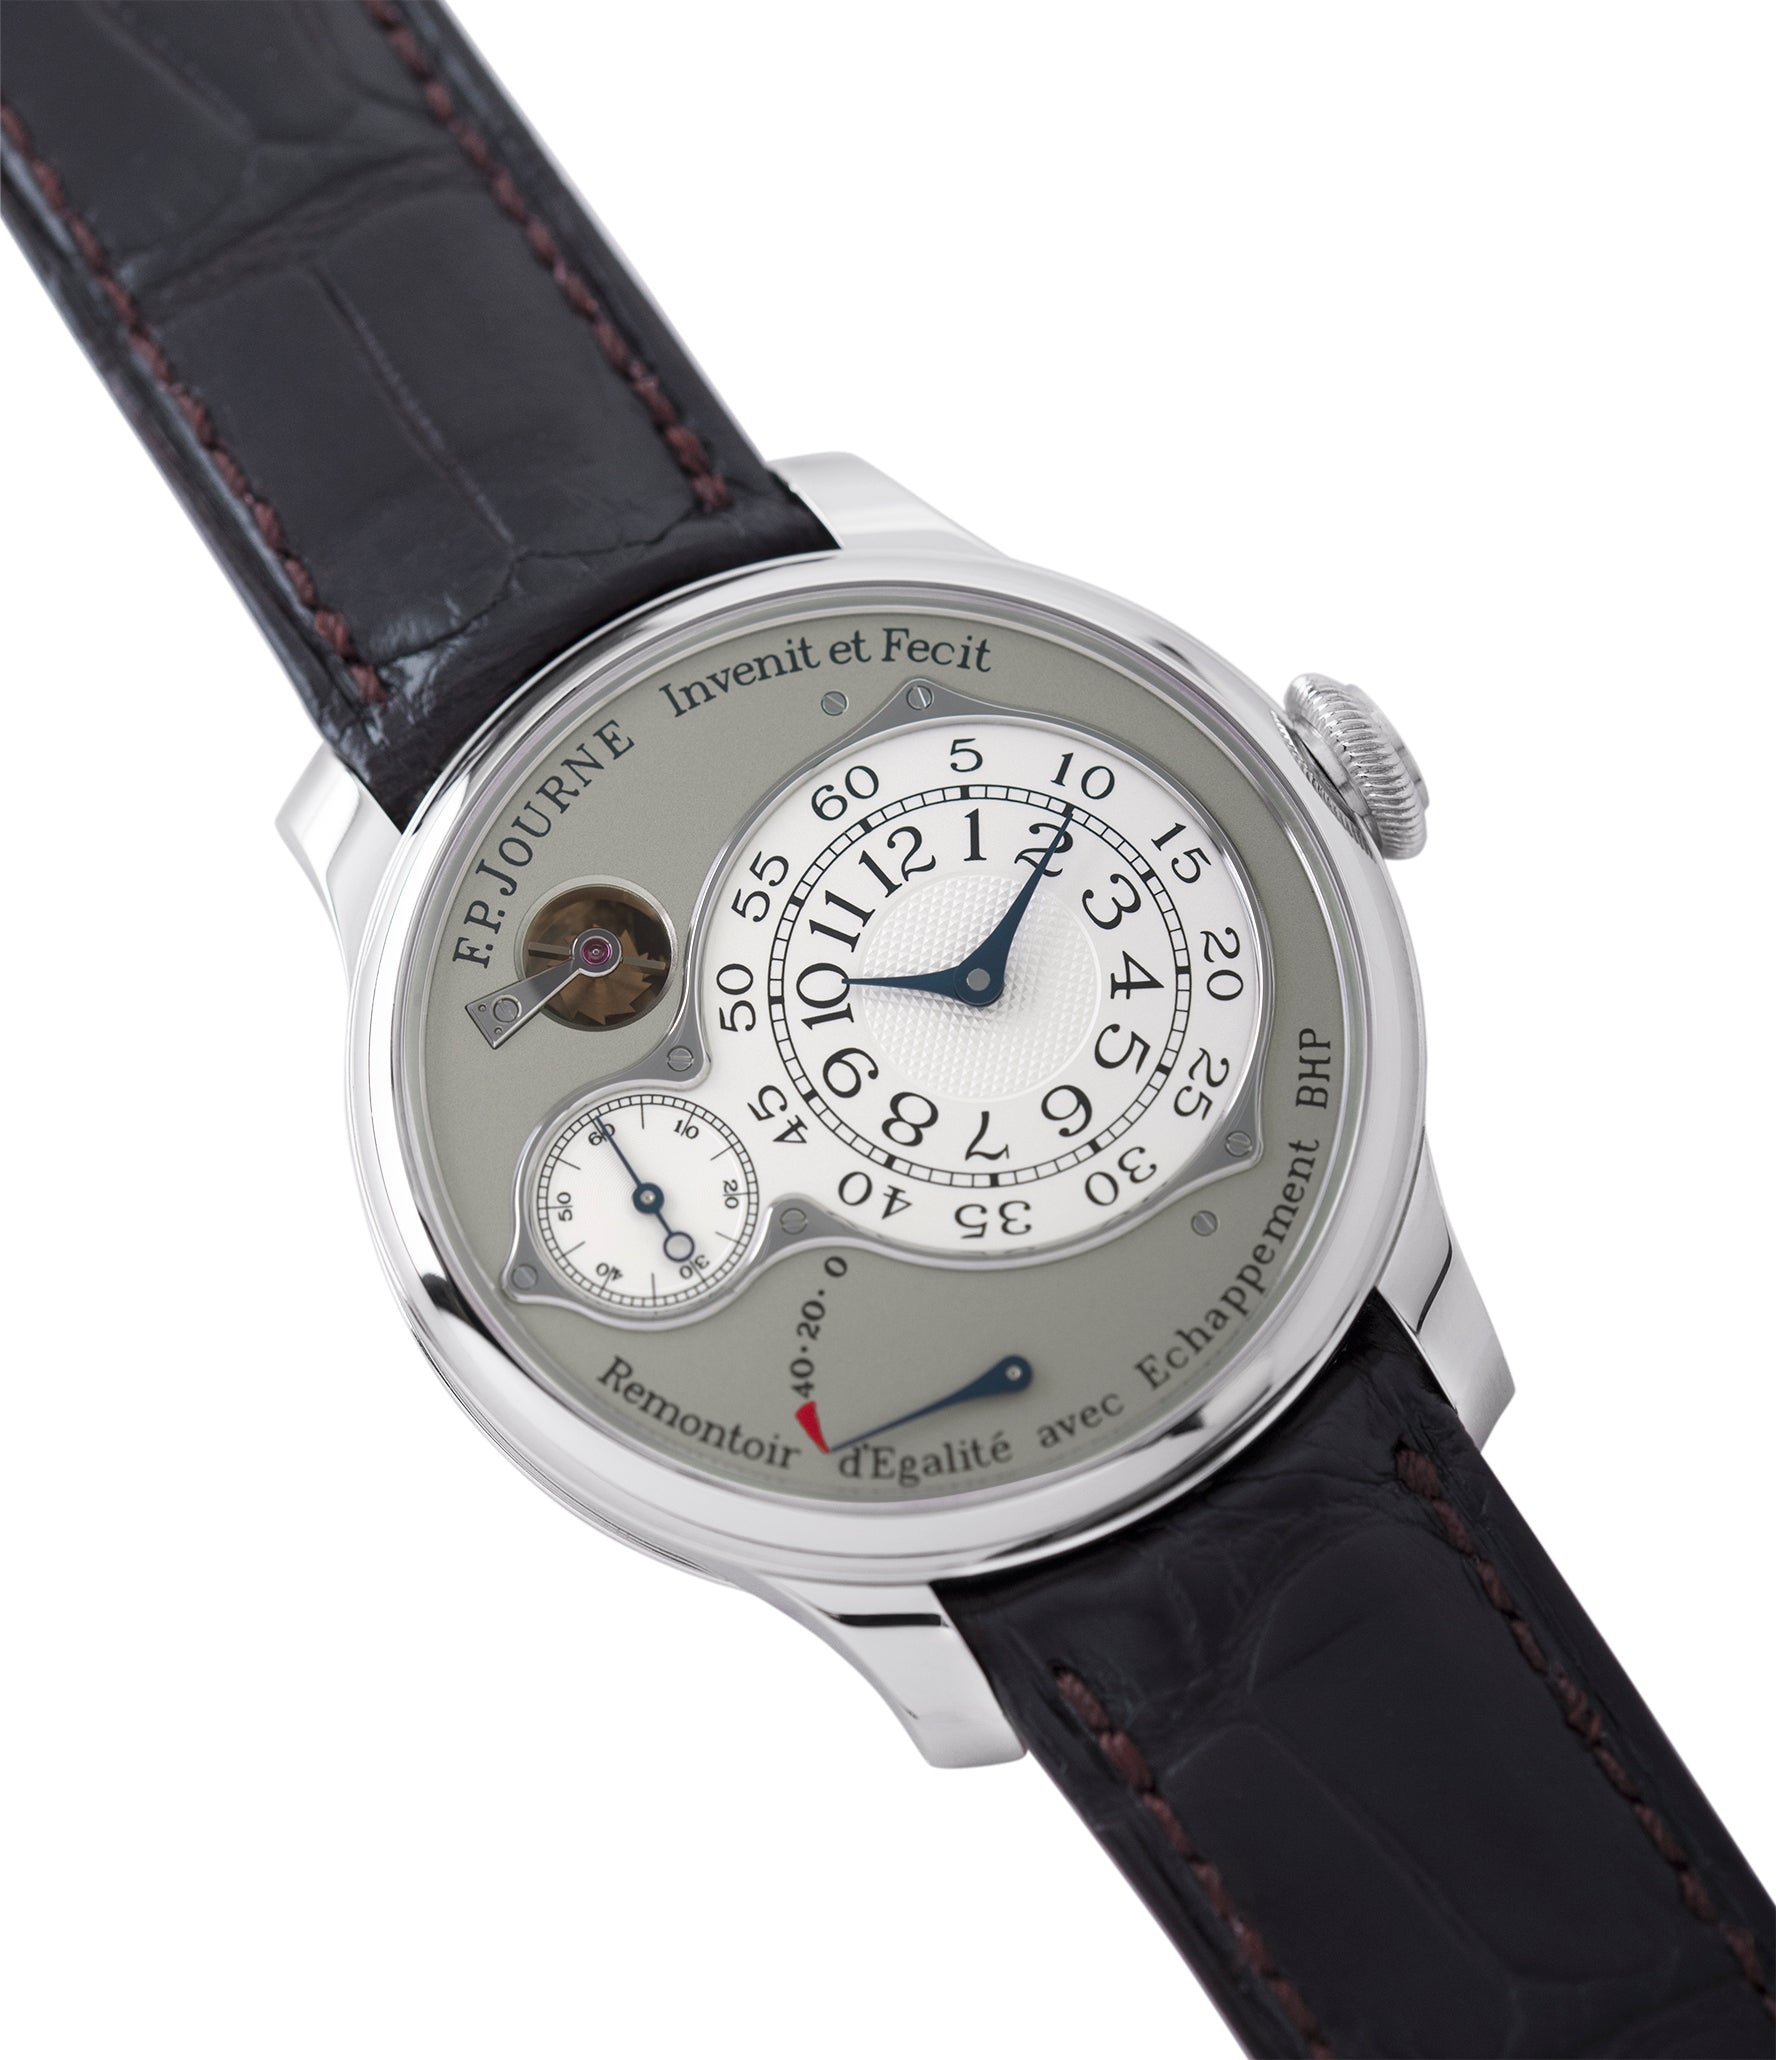 selling F. P. Journe Chronometre Optimum platinum rare watch for sale online at A Collected Man London approved retailer of independent watchmakers